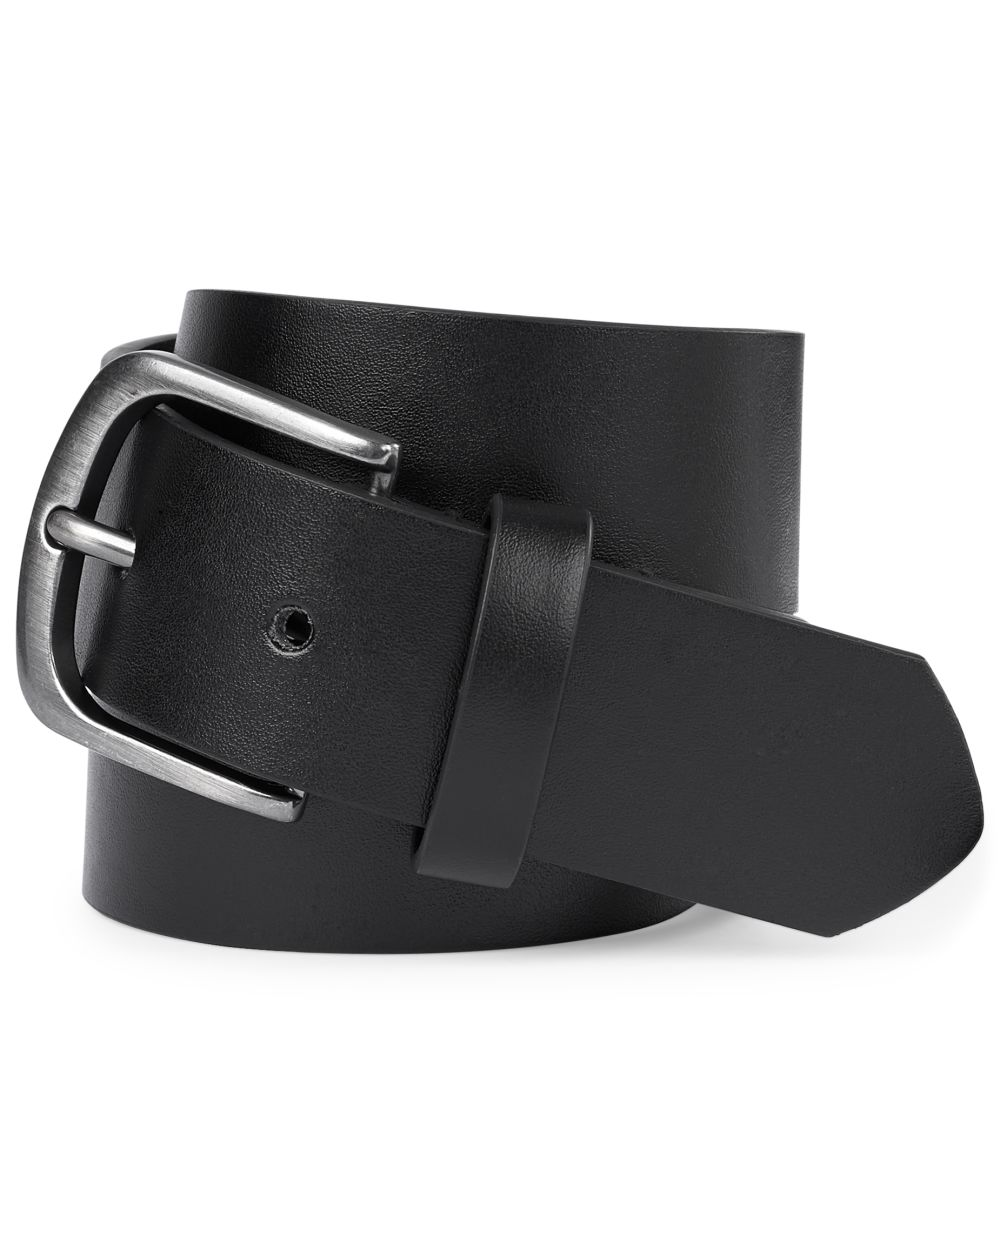 Boys Uniform Belt